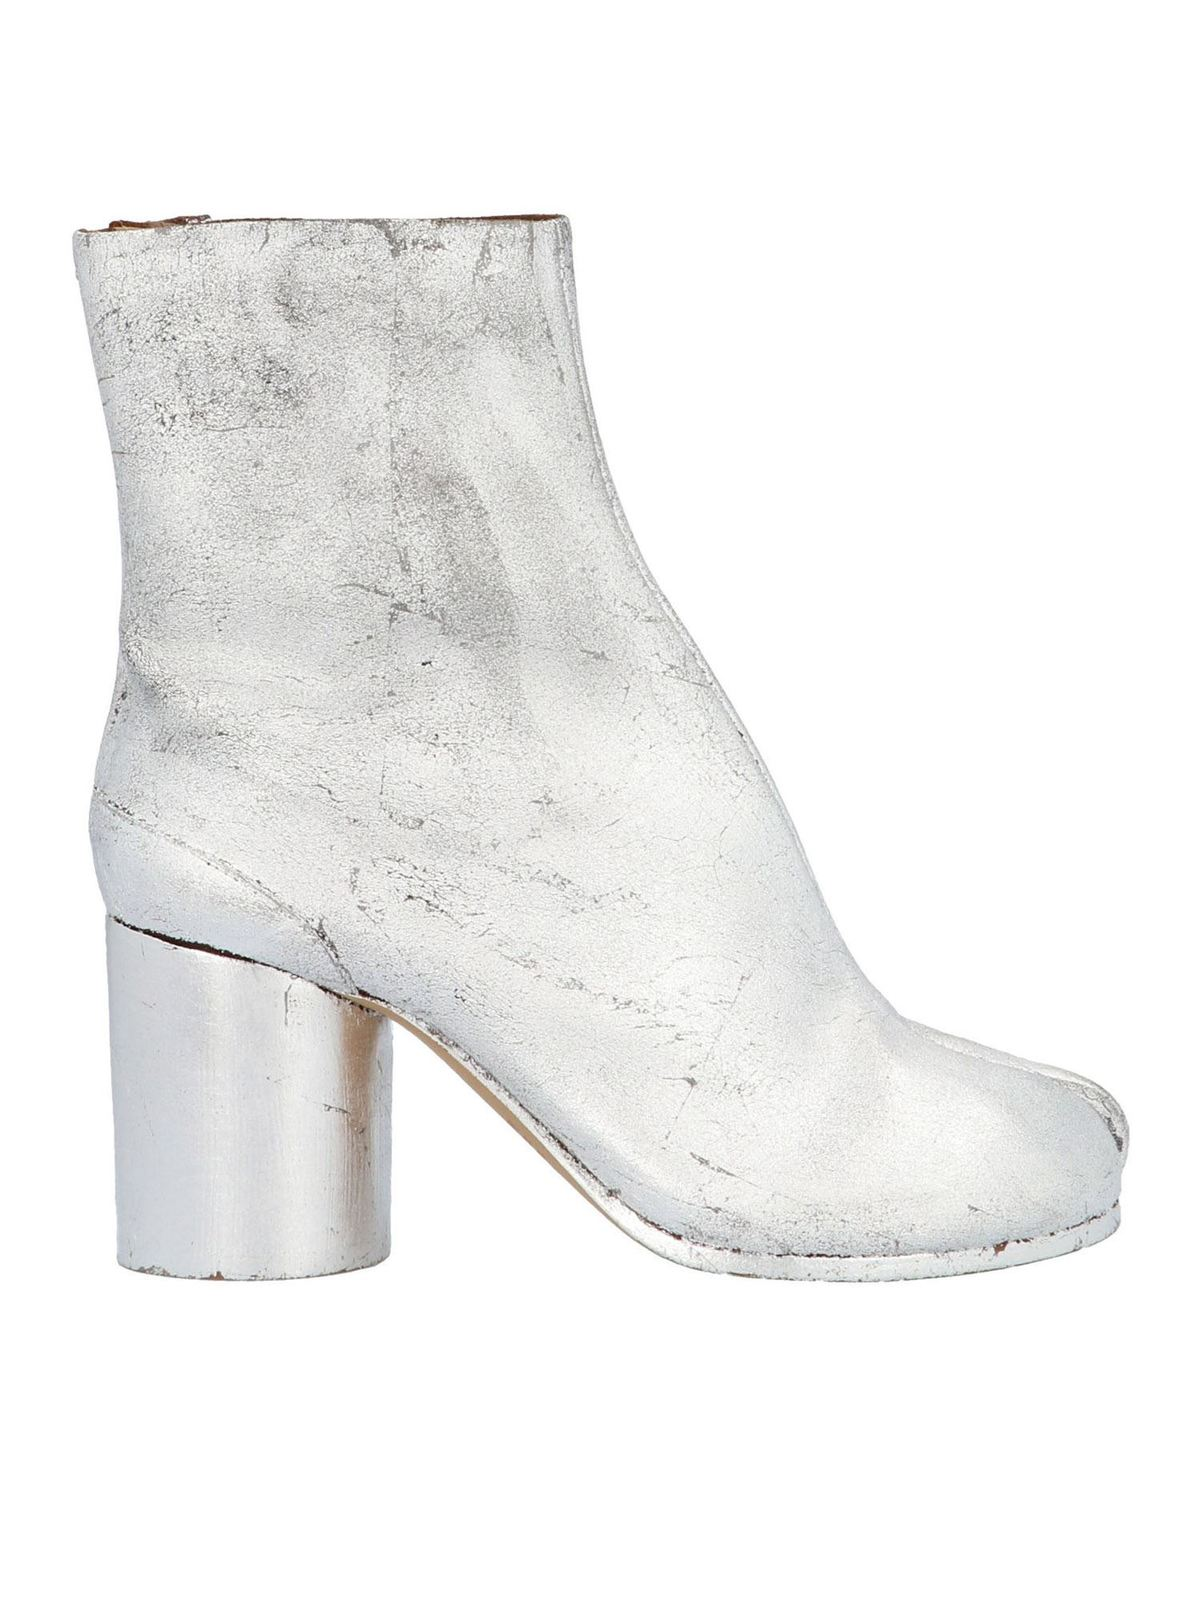 MAISON MARGIELA TABI ANKLE BOOTS IN SILVER COLOR